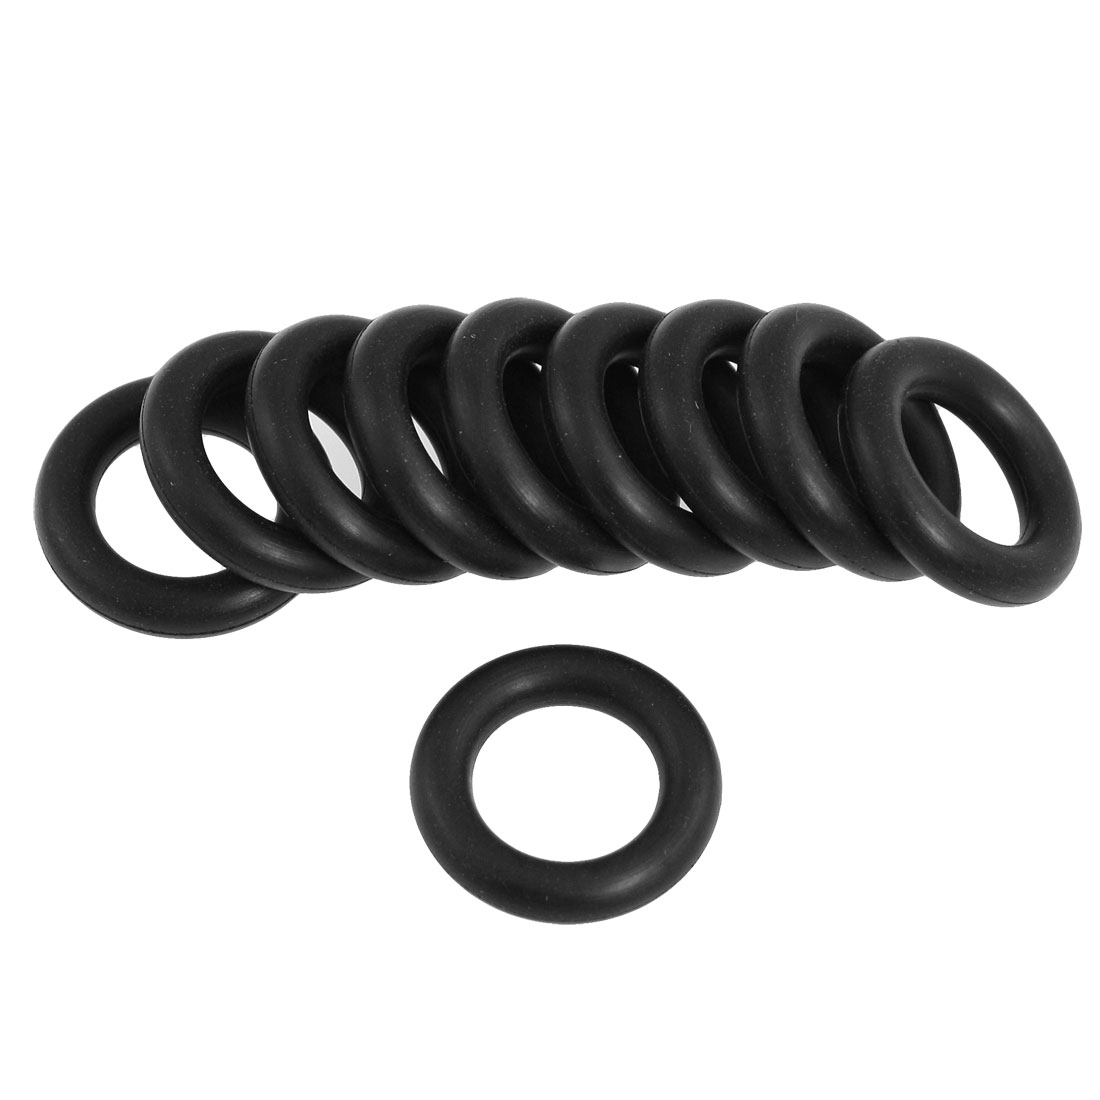 Black 25mm x 5mm O Rings Hole Sealing Gasket Washer 10 Pcs